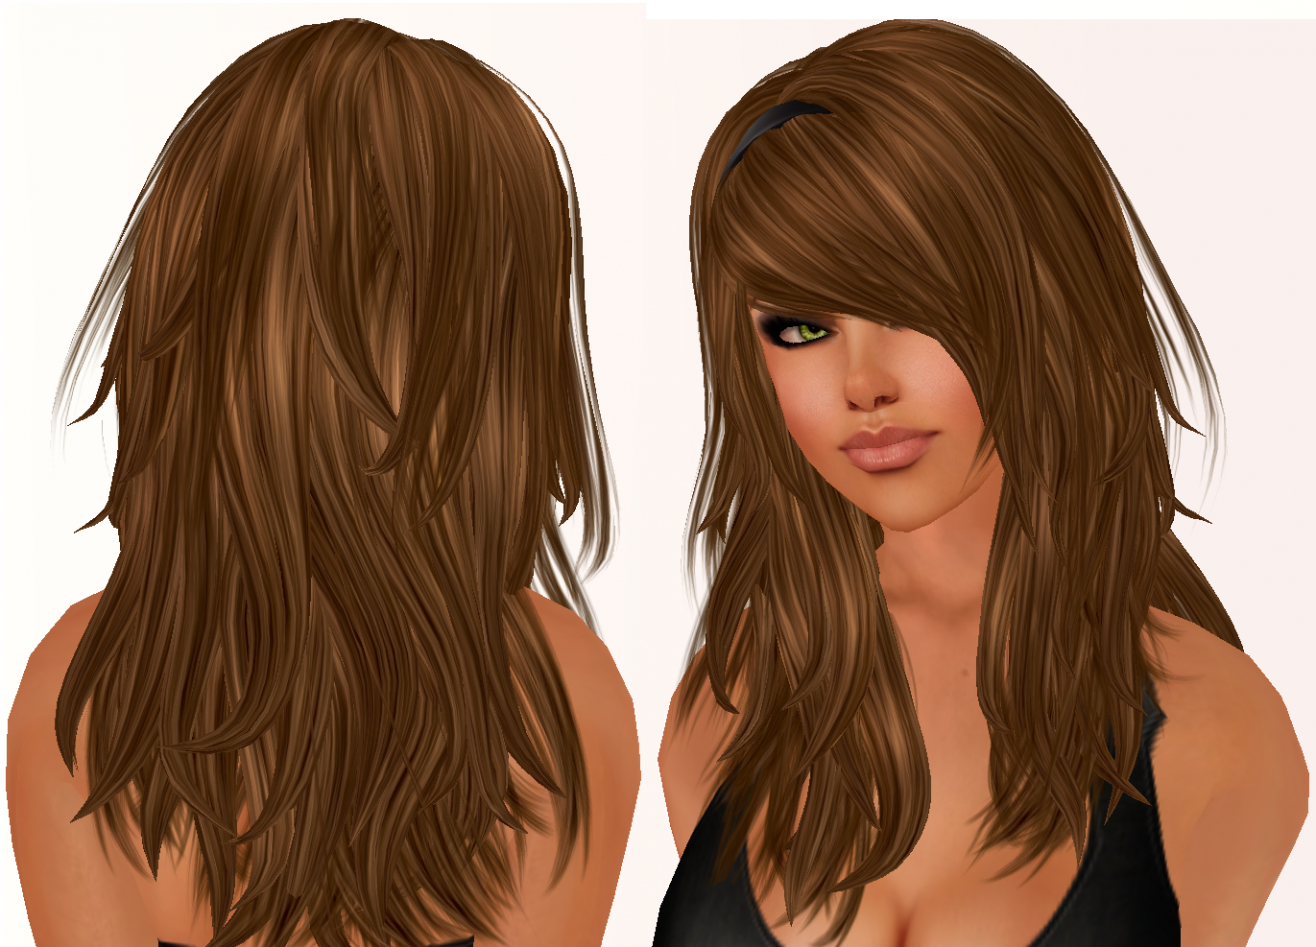 Most Popular Medium Hairstyles With Layers And Side Bangs Intended For Cute Hairstyles For Medium Hair With Side Bangs And Layers (View 11 of 20)